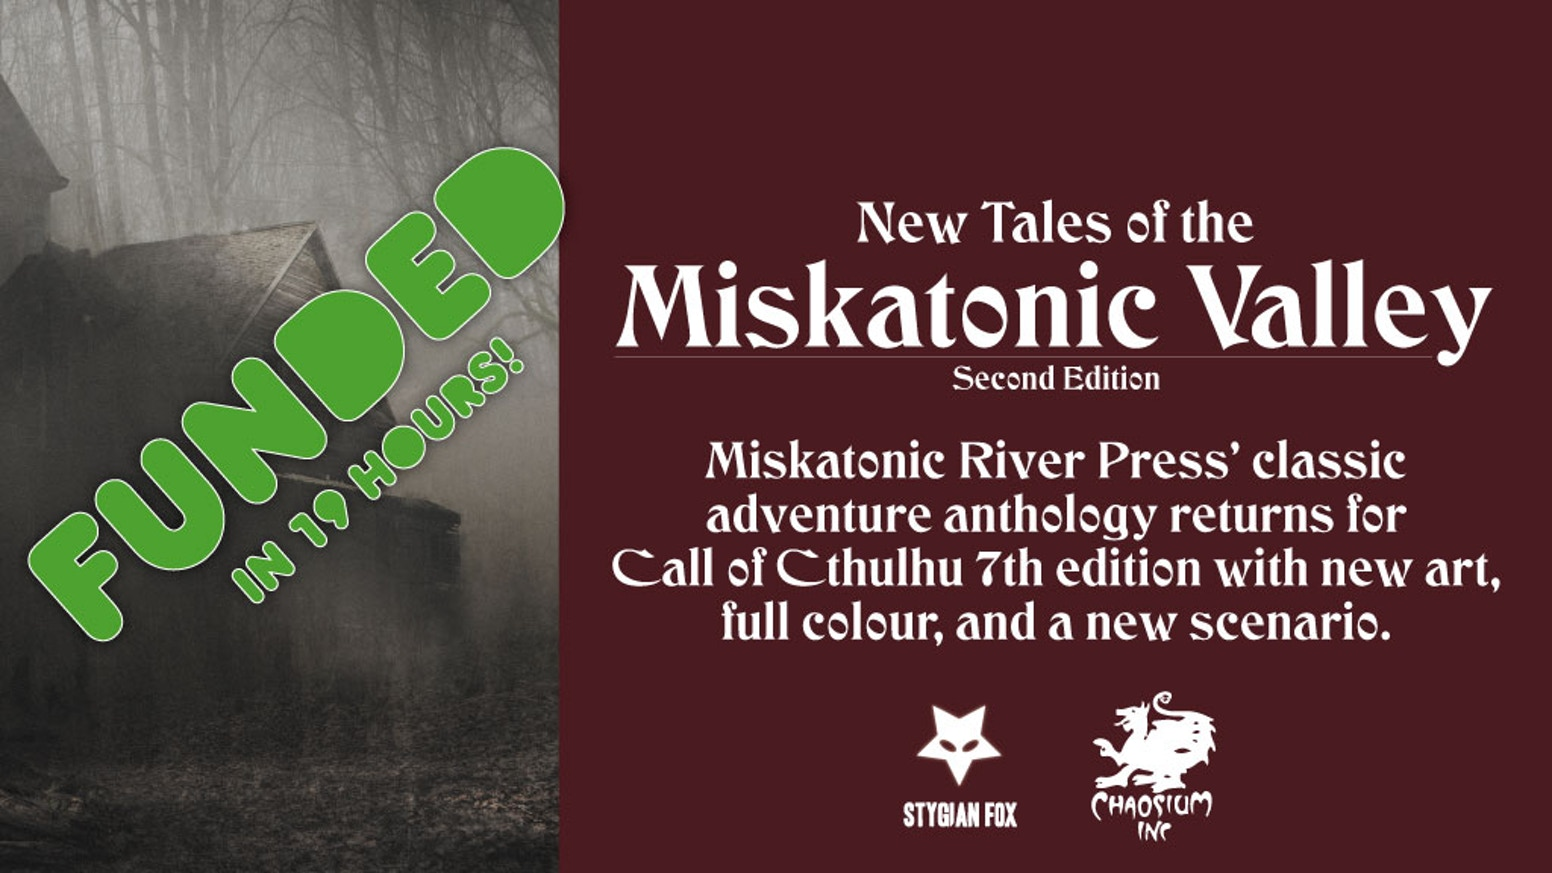 'New Tales from Miskatonic Valley' 2nd Edition produced under license for the Call of Cthulhu RPG by Chaosium Inc.